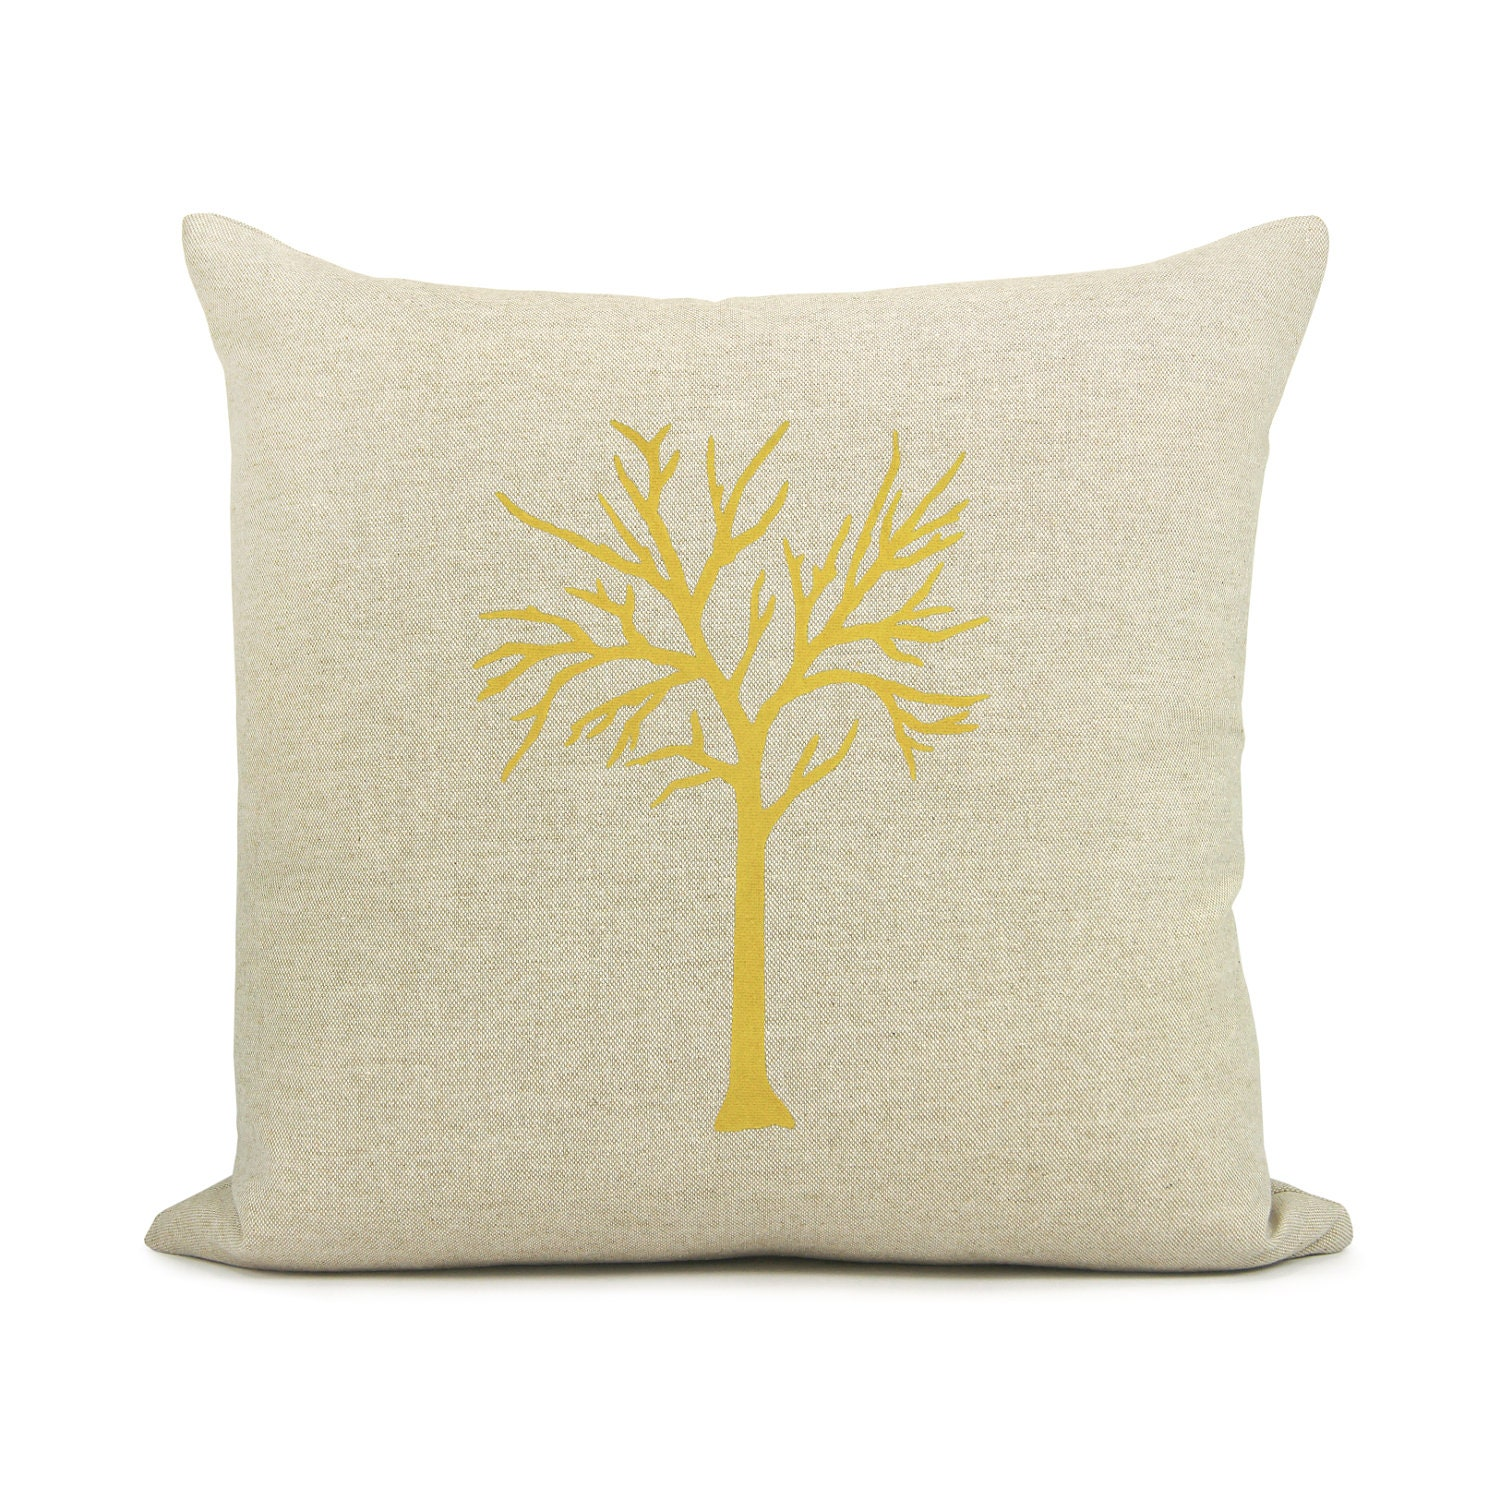 Newport Throw Pillows Birds : 16x16 tree or birds decorative pillow case by ClassicByNature